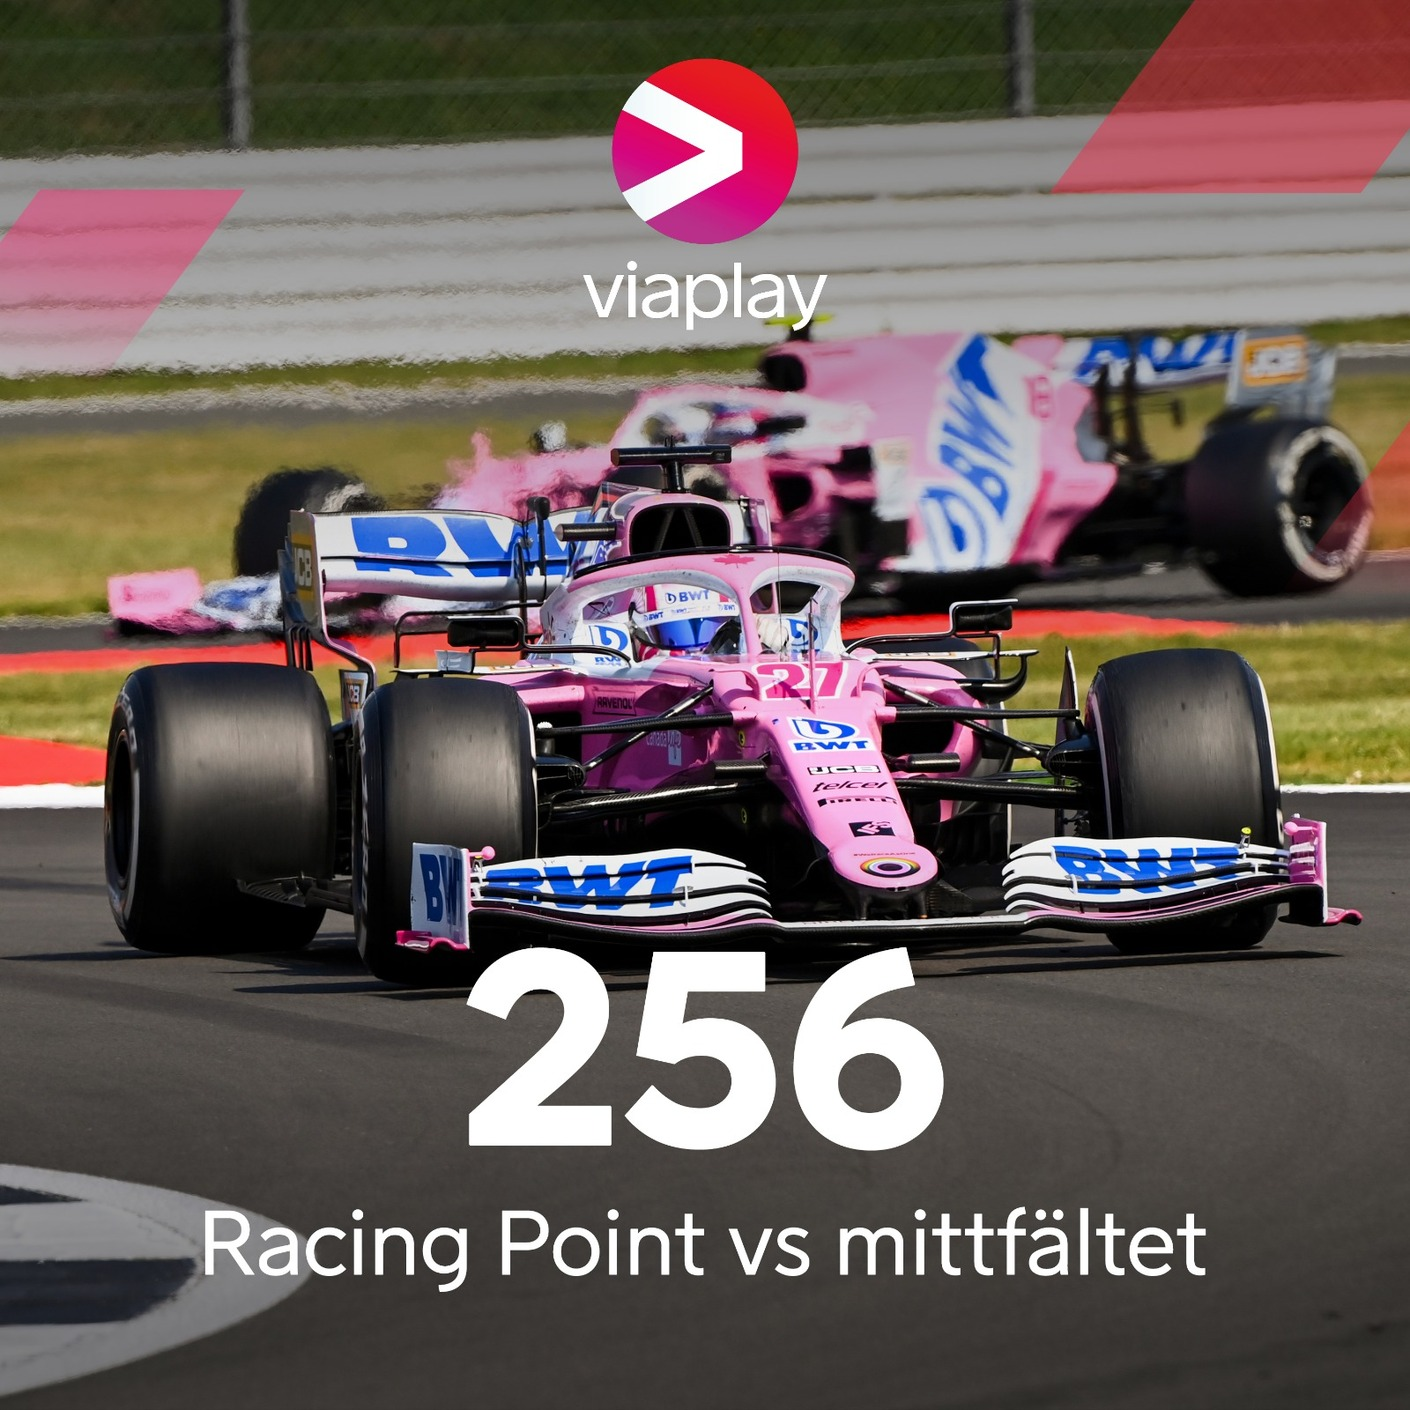 256. Racing Point vs mittfältet